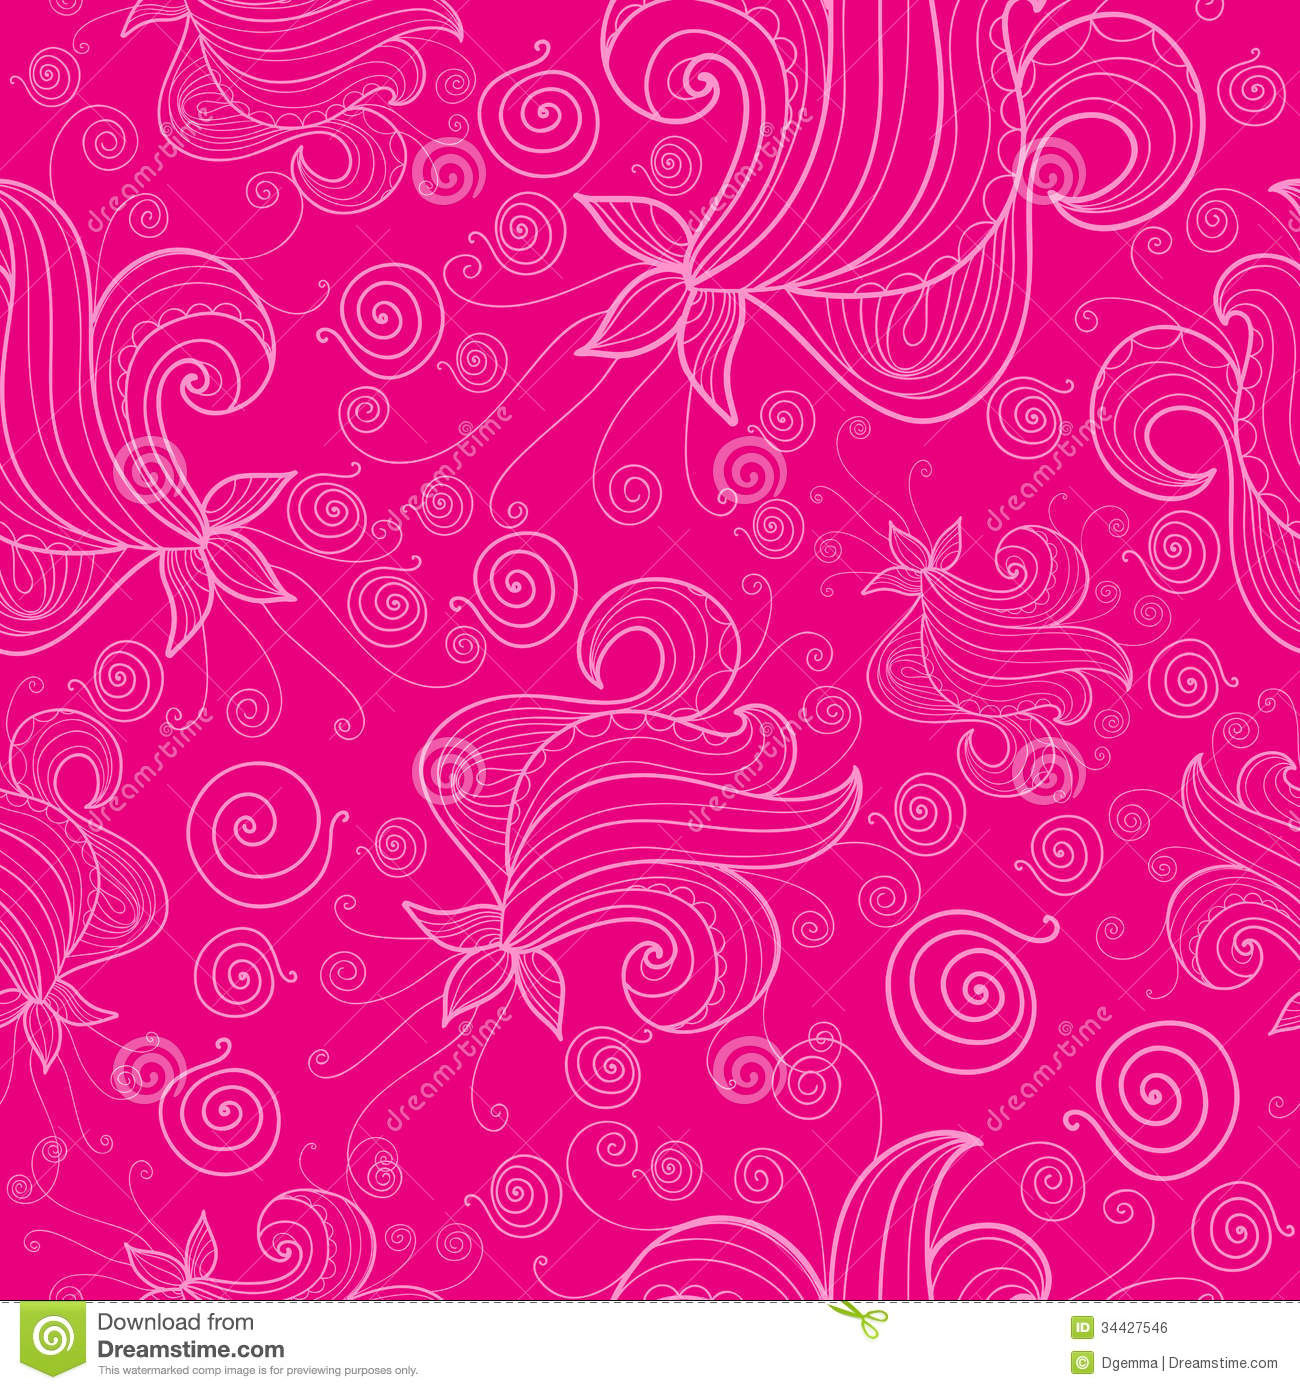 Fashion week Flower Pink background pattern pictures for girls